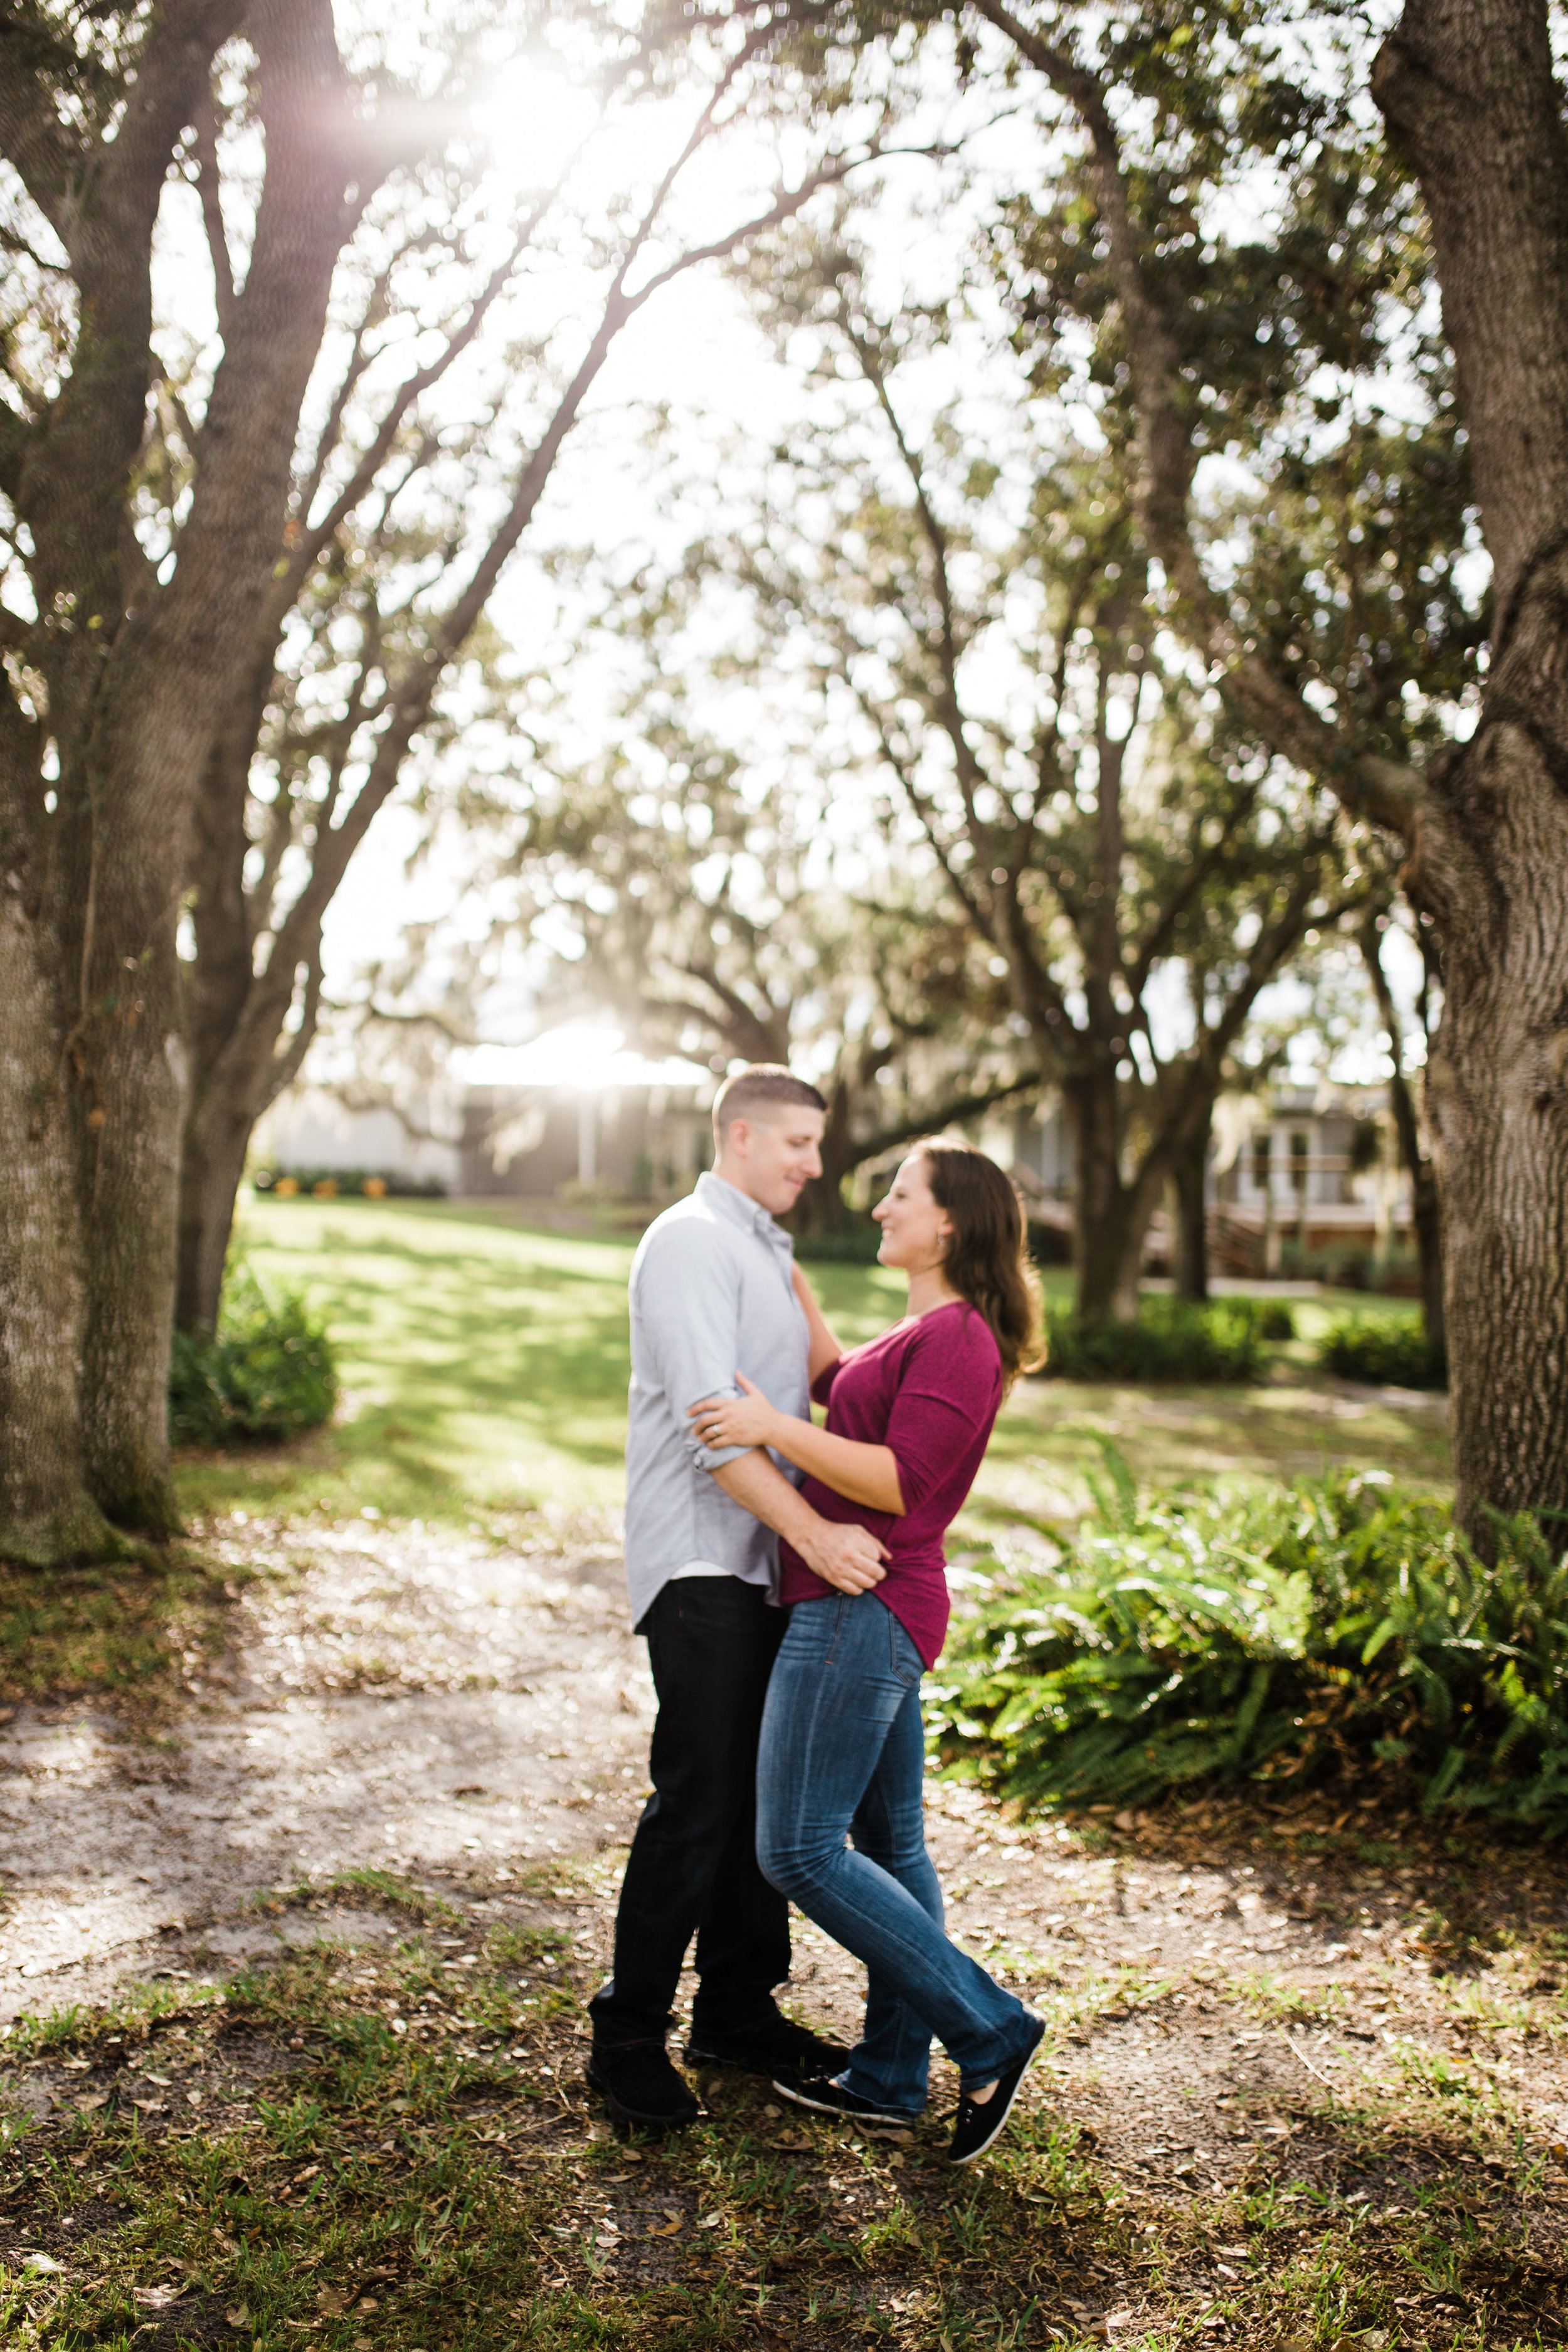 2017.09.22 Lindsay and Joey Engagement Session Up The Creek Farms (64 of 103).jpg